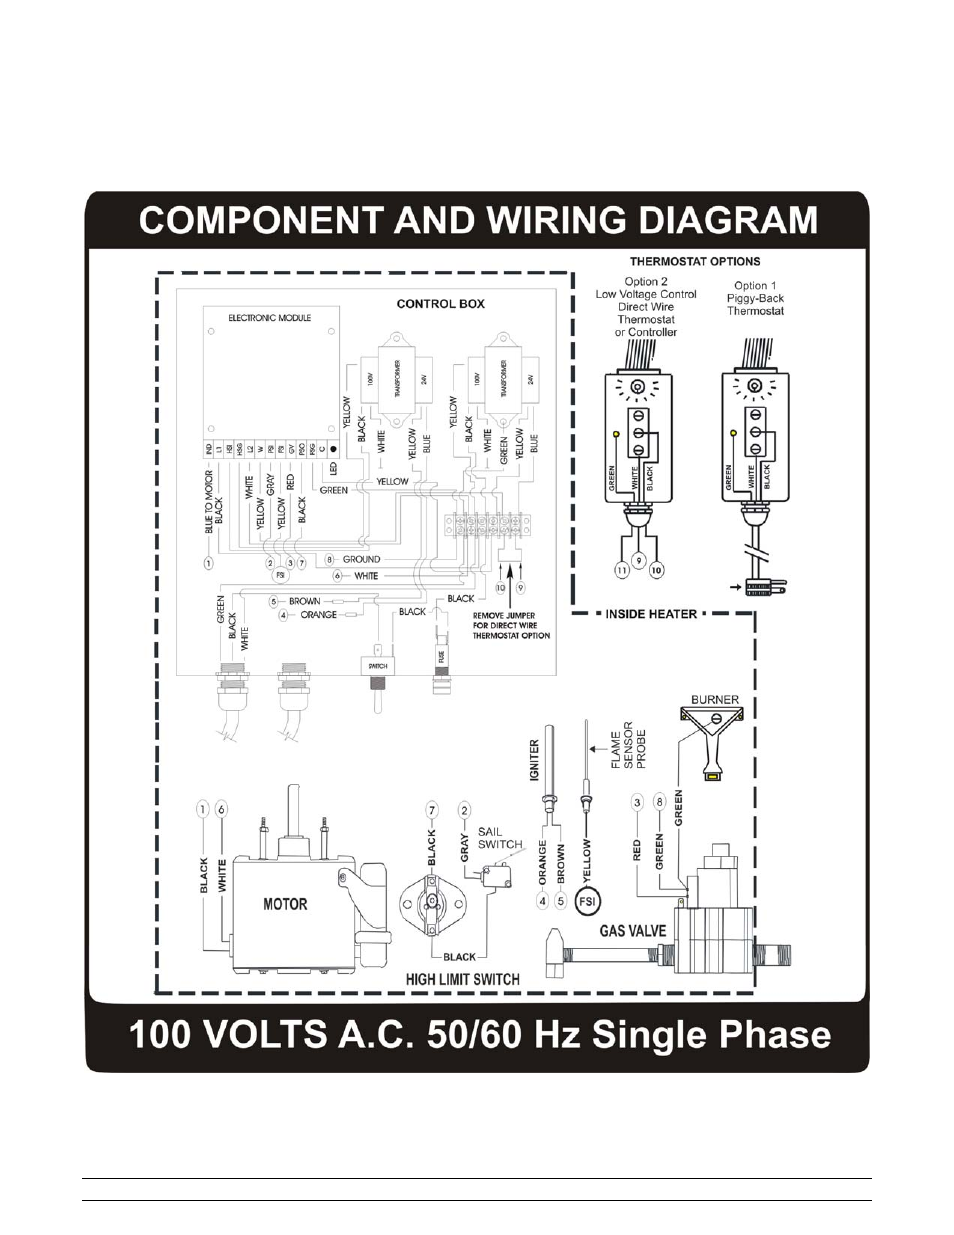 component and wiring diagram